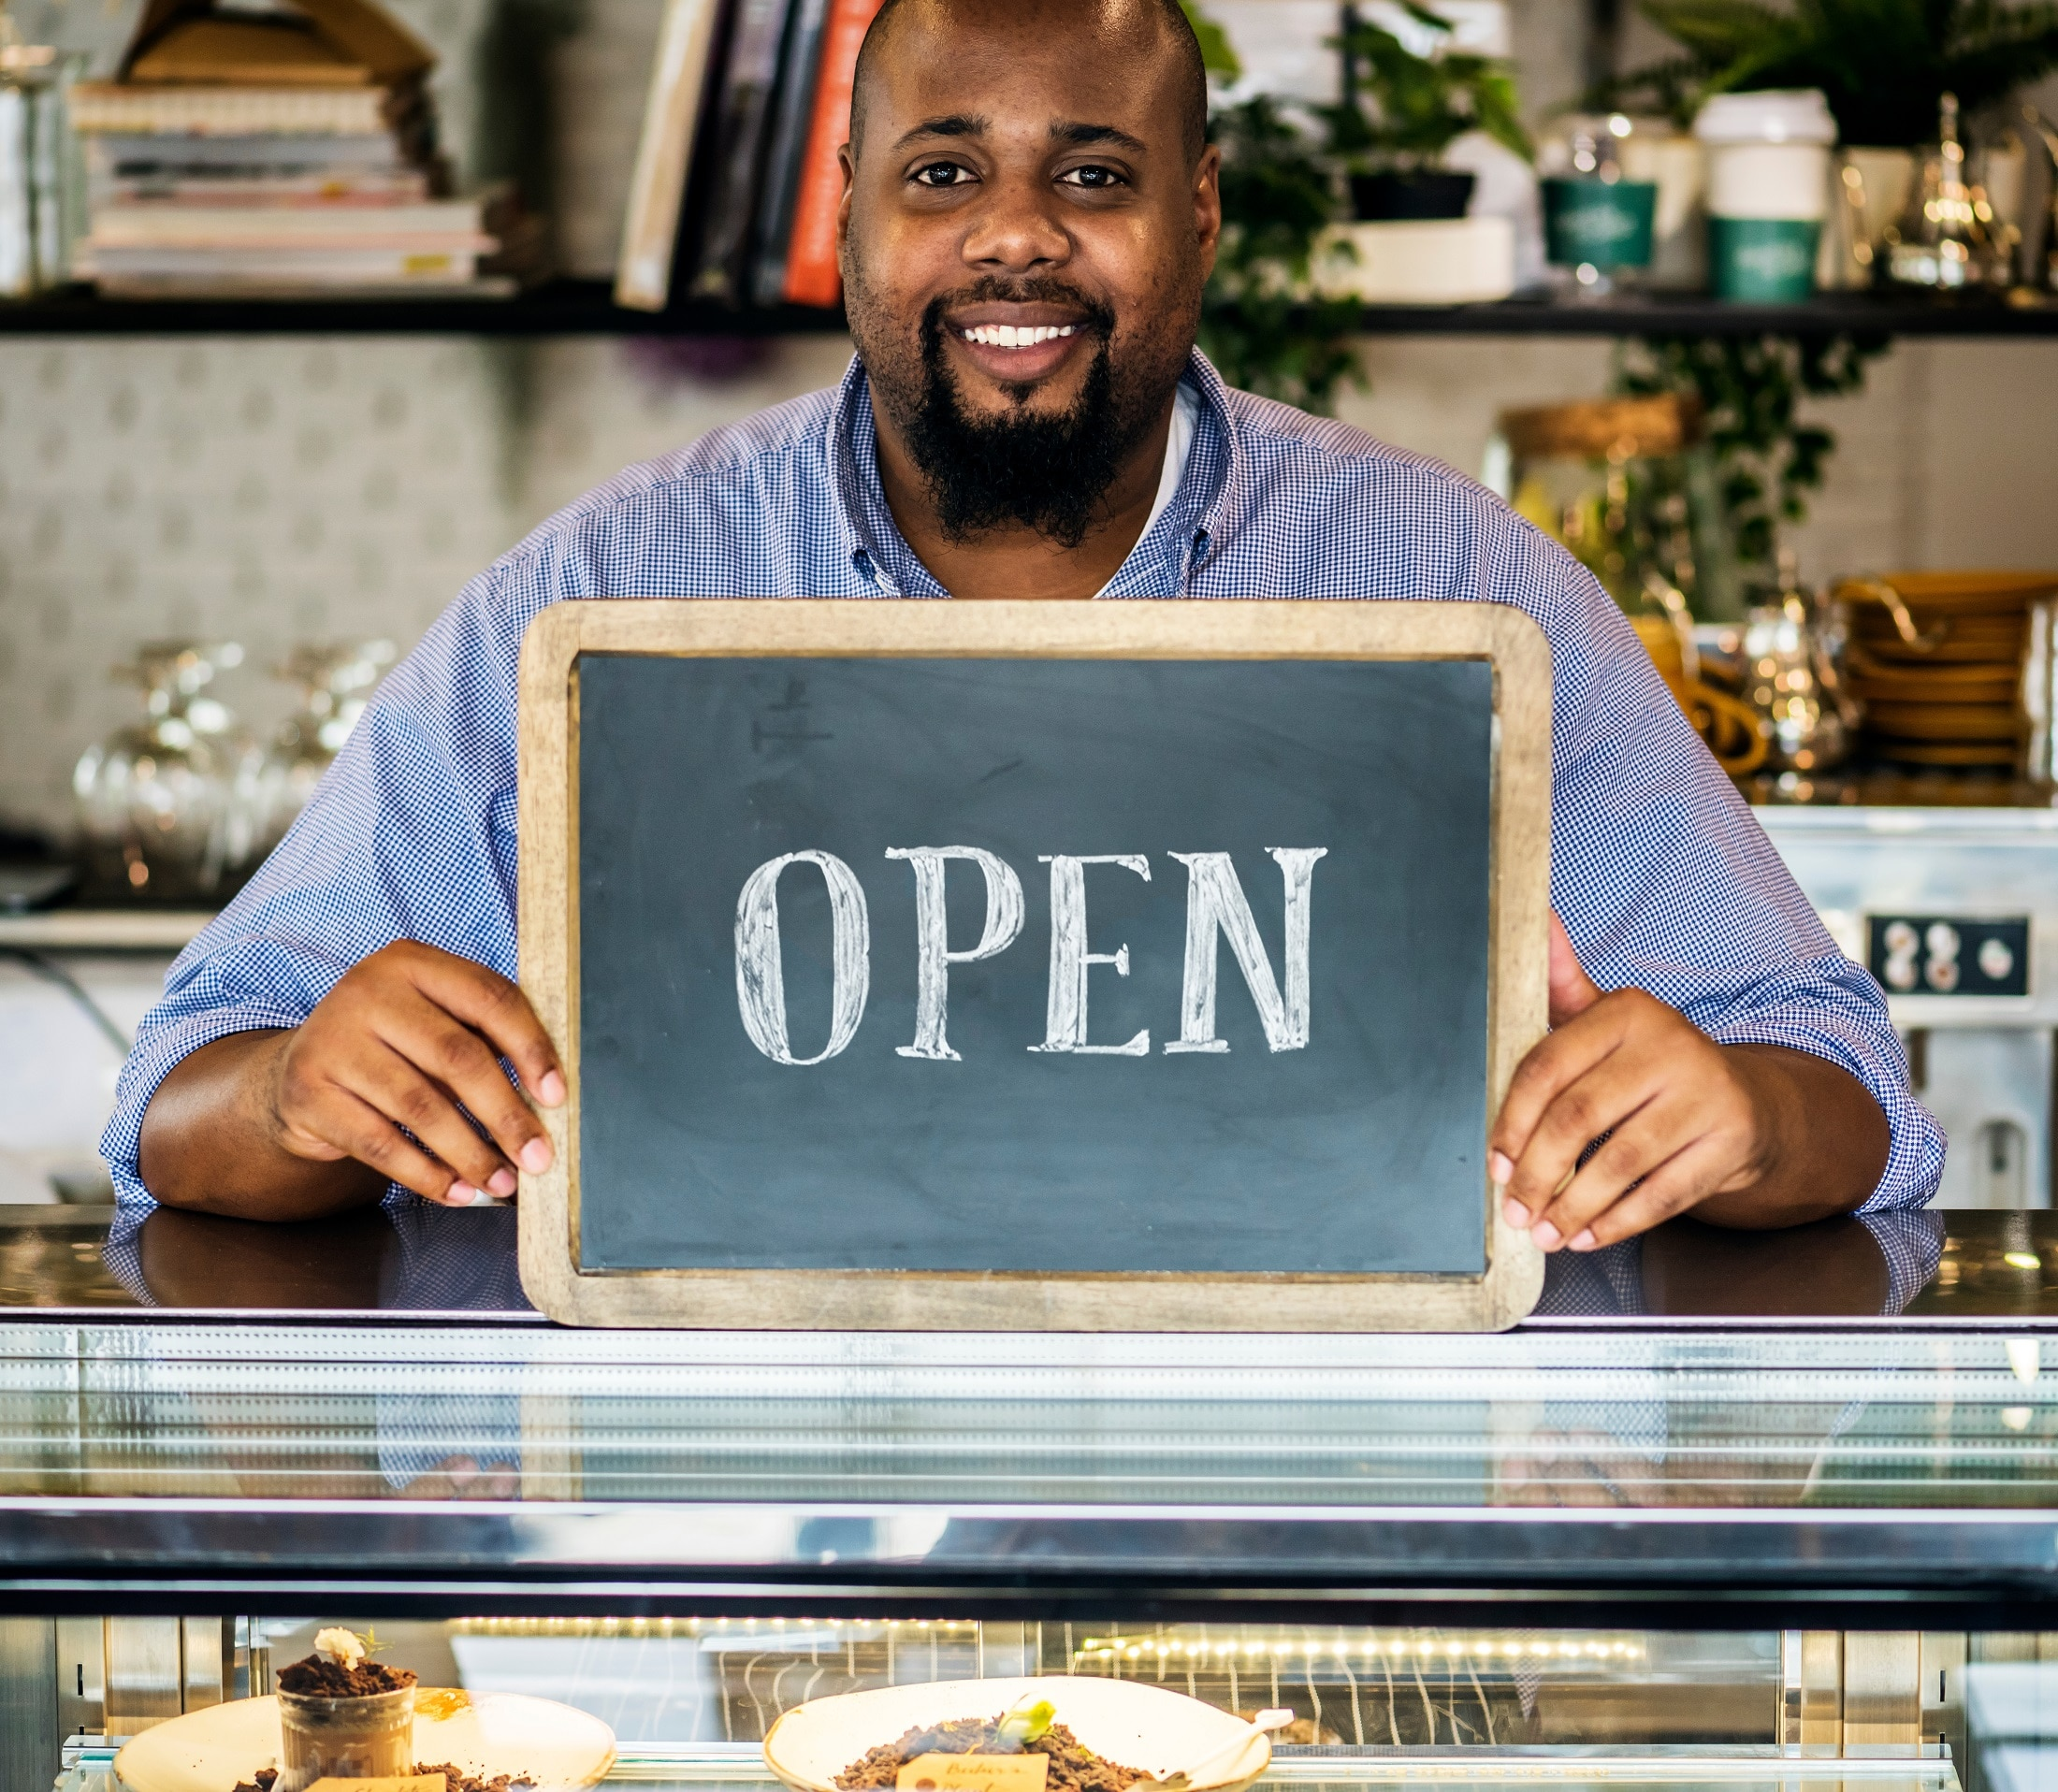 Support Minority Owned Businesses